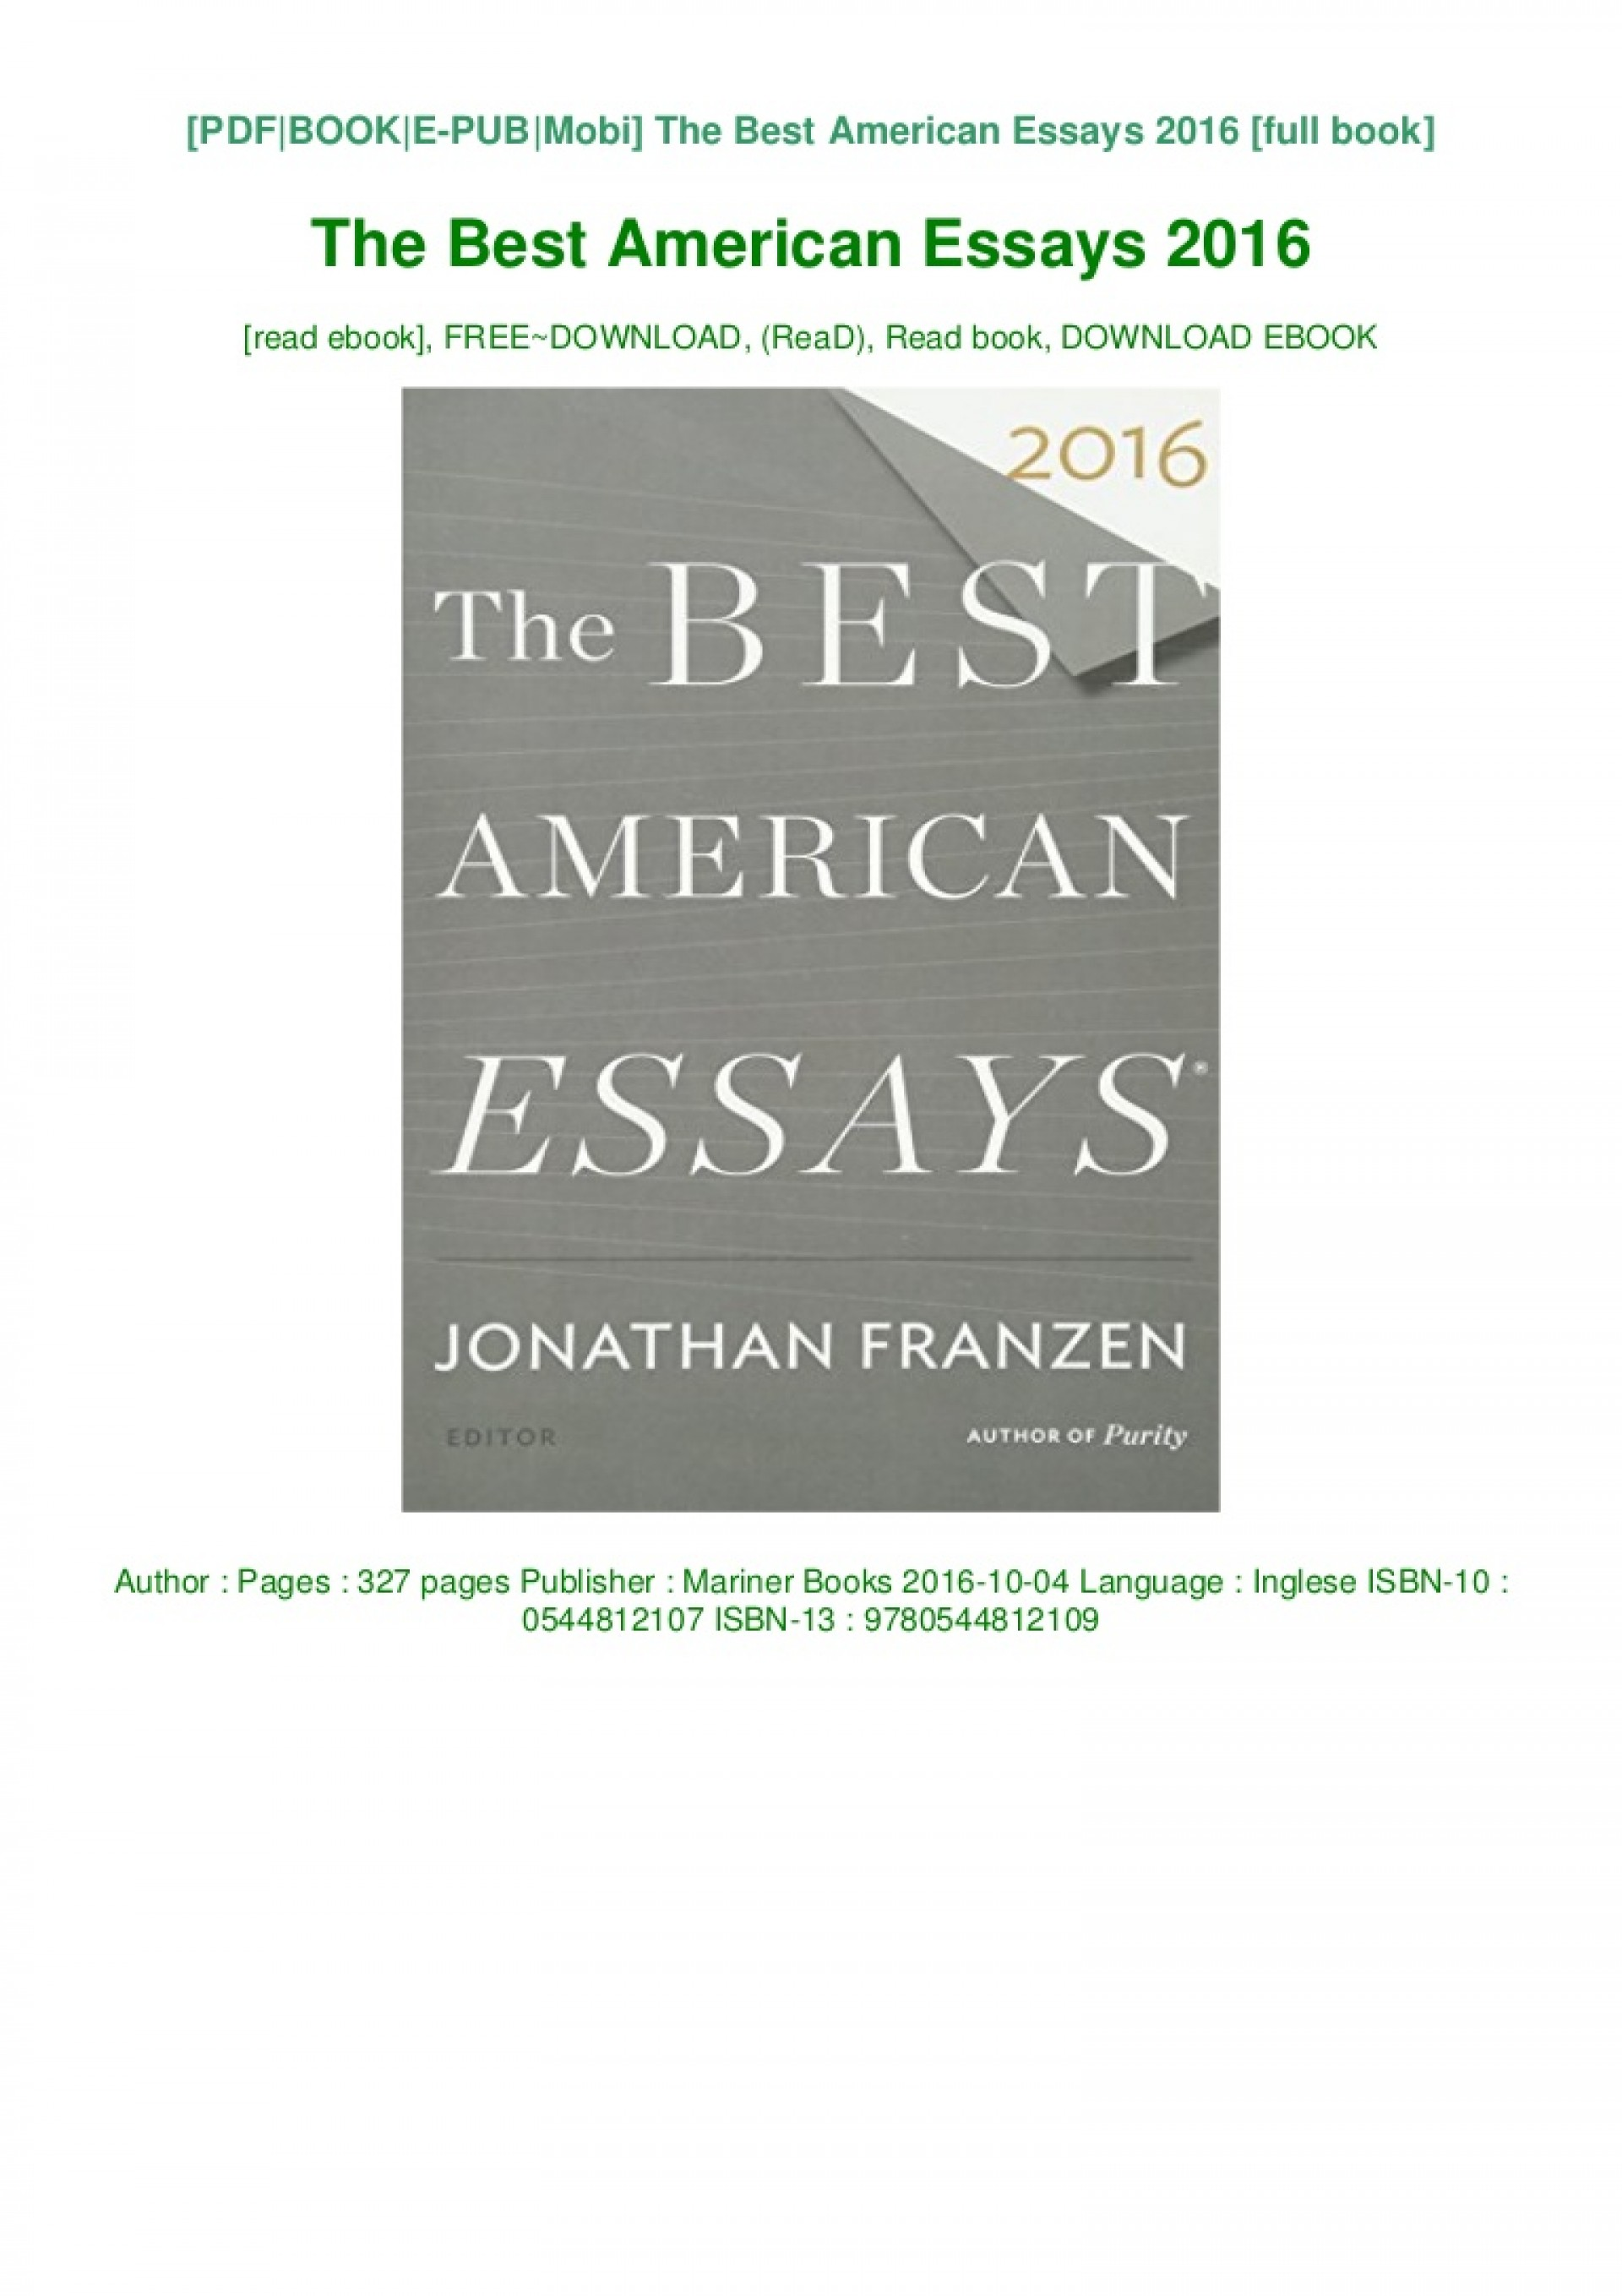 013 Download The Best American Essays Pdf Epub Audiobook Ebook Thumbnail Essay Striking 2017 Table Of Contents Century 1920